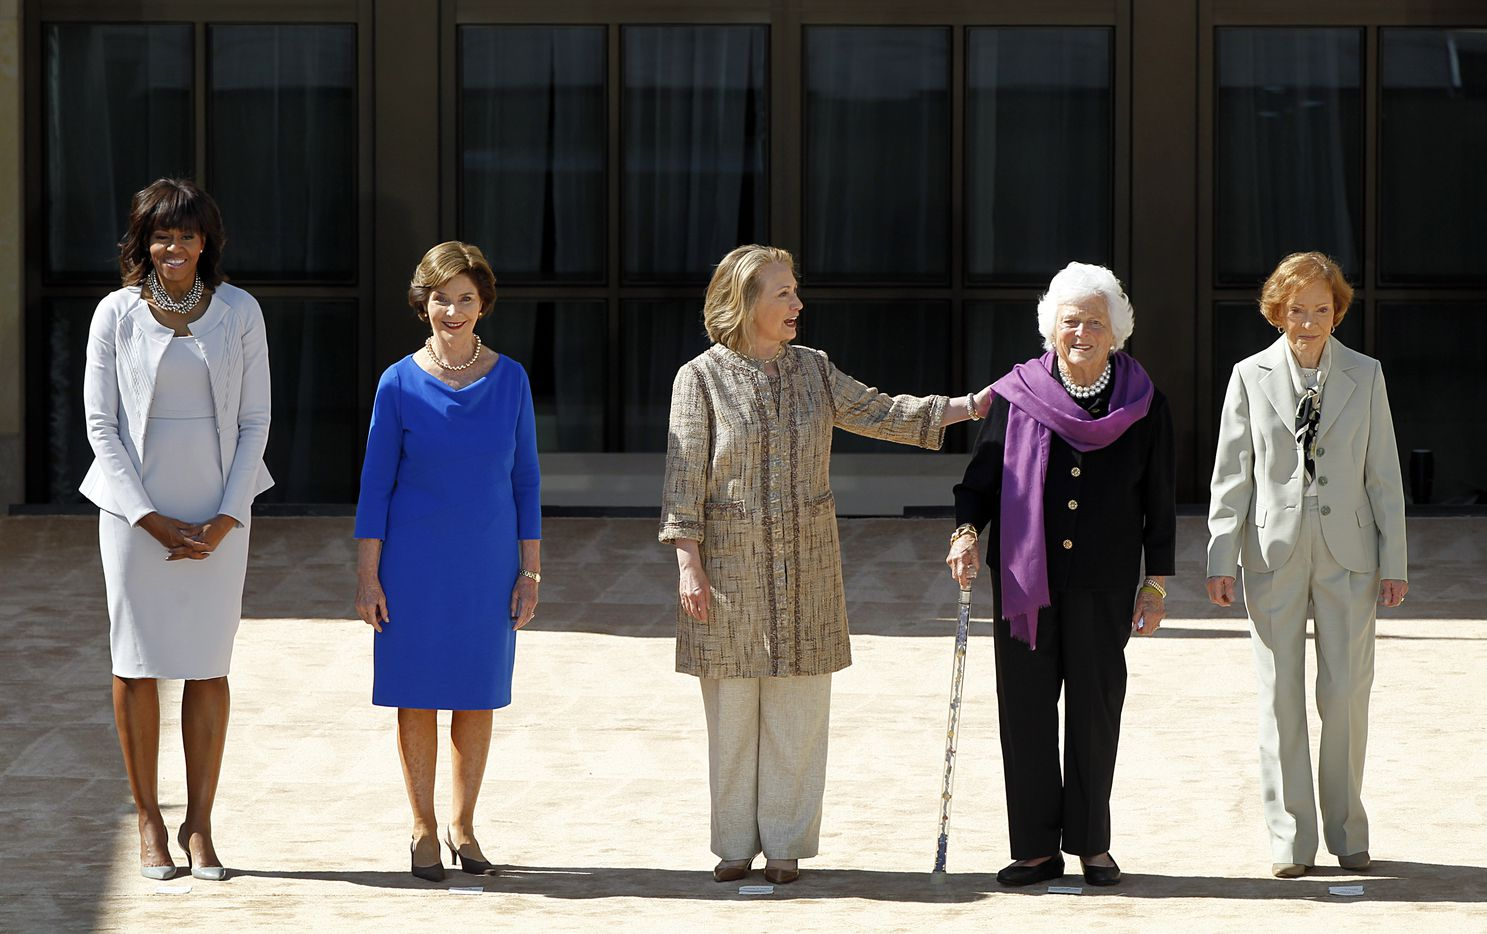 Barbara Bush was one of the five first ladies introduced at the George W. Bush Presidential Center dedication in University Park on April 25, 2013. From left: Michelle Obama, Laura Bush, Hillary Clinton, Barbara Bush and Rosalynn Carter.